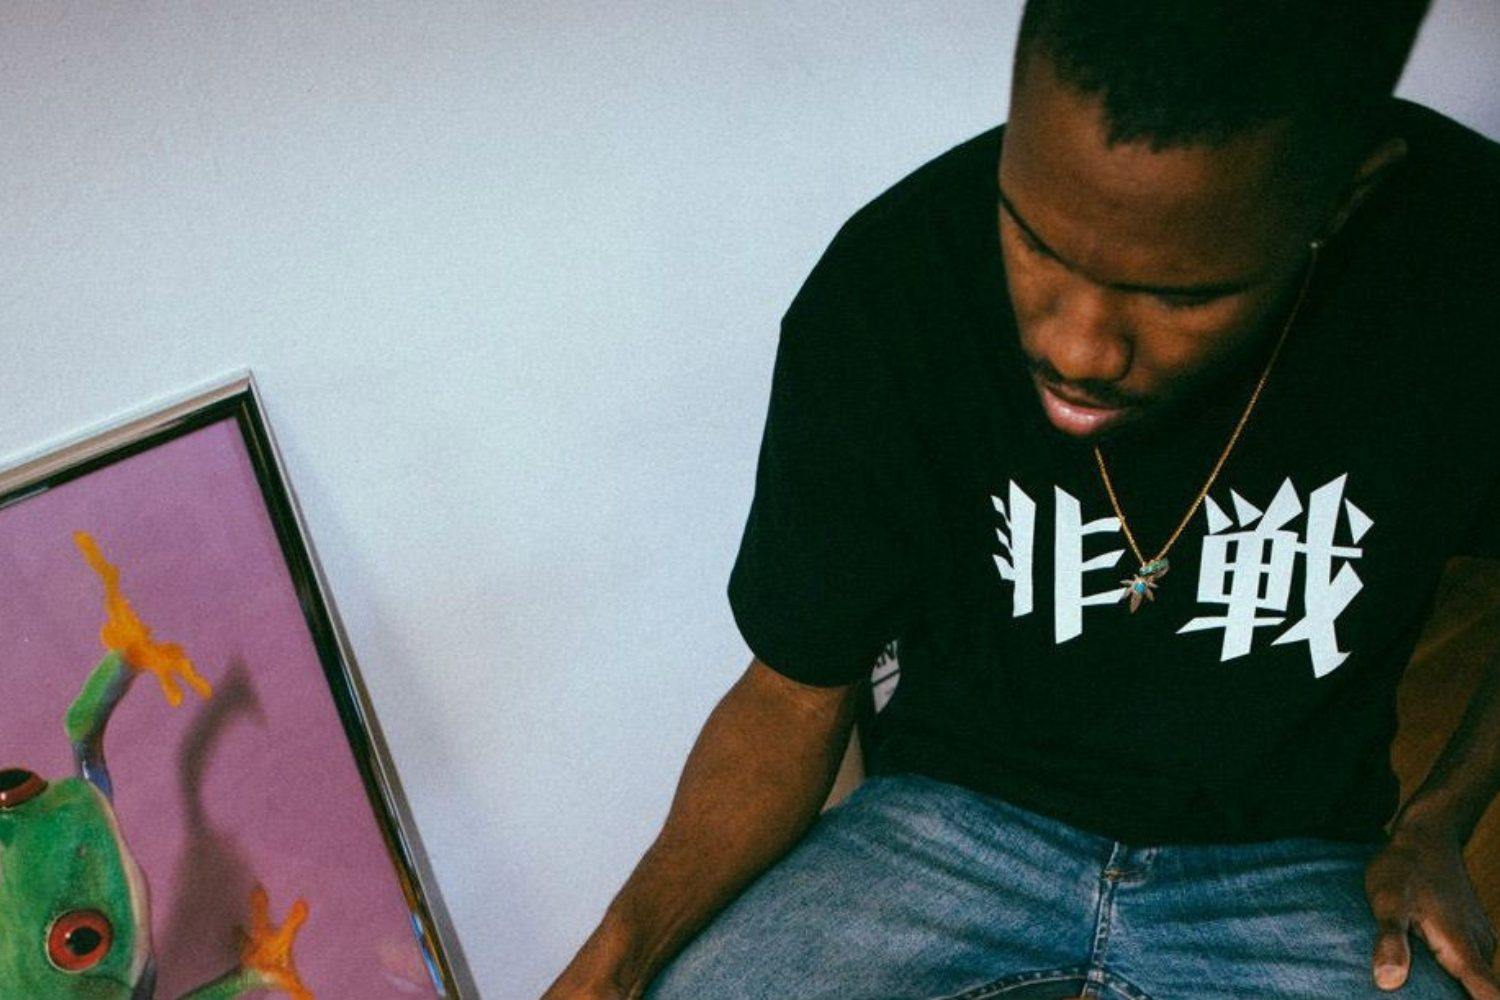 Frank Ocean and Om'Mas Keith have dropped their 'Blonde' lawsuits